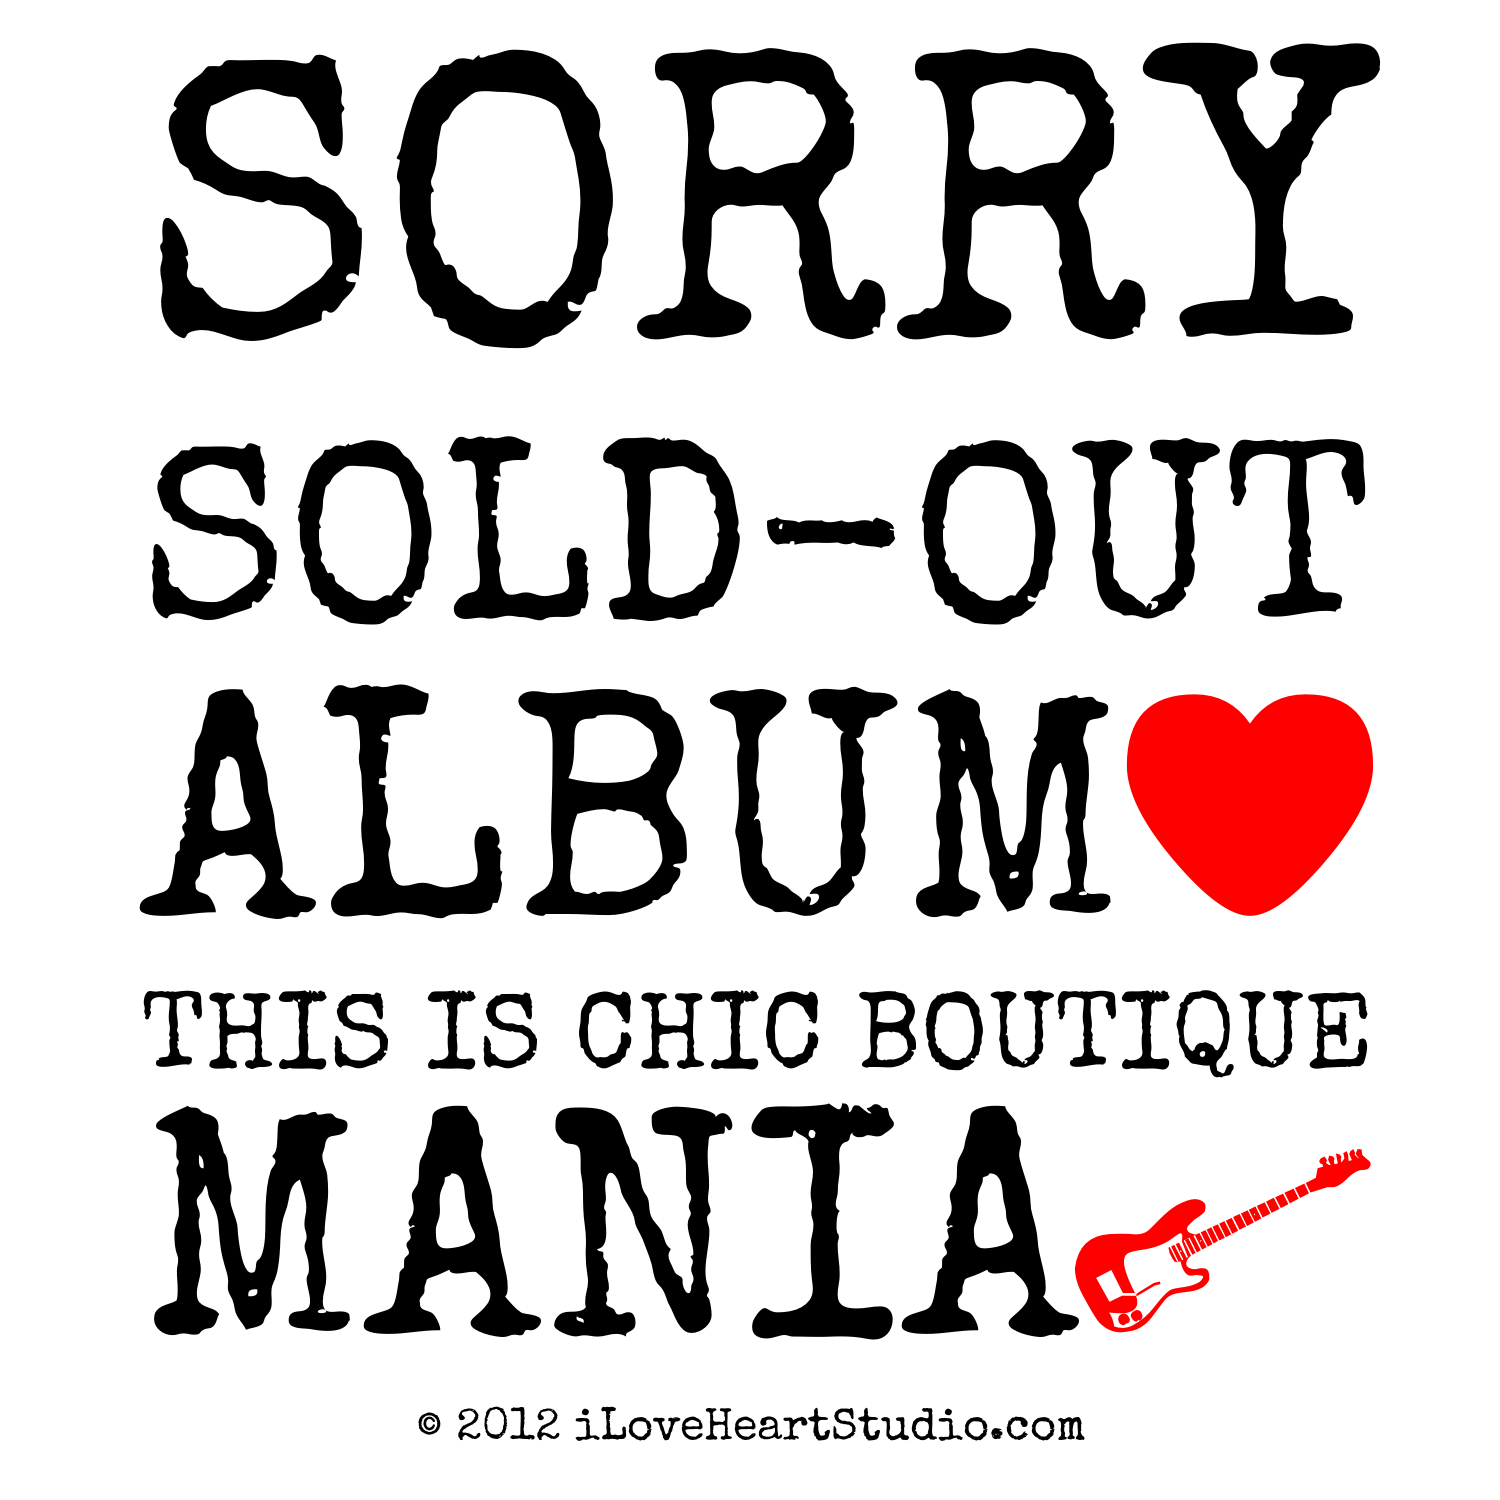 Sorry Sold Out Album Love Heart This Is Chic Boutique